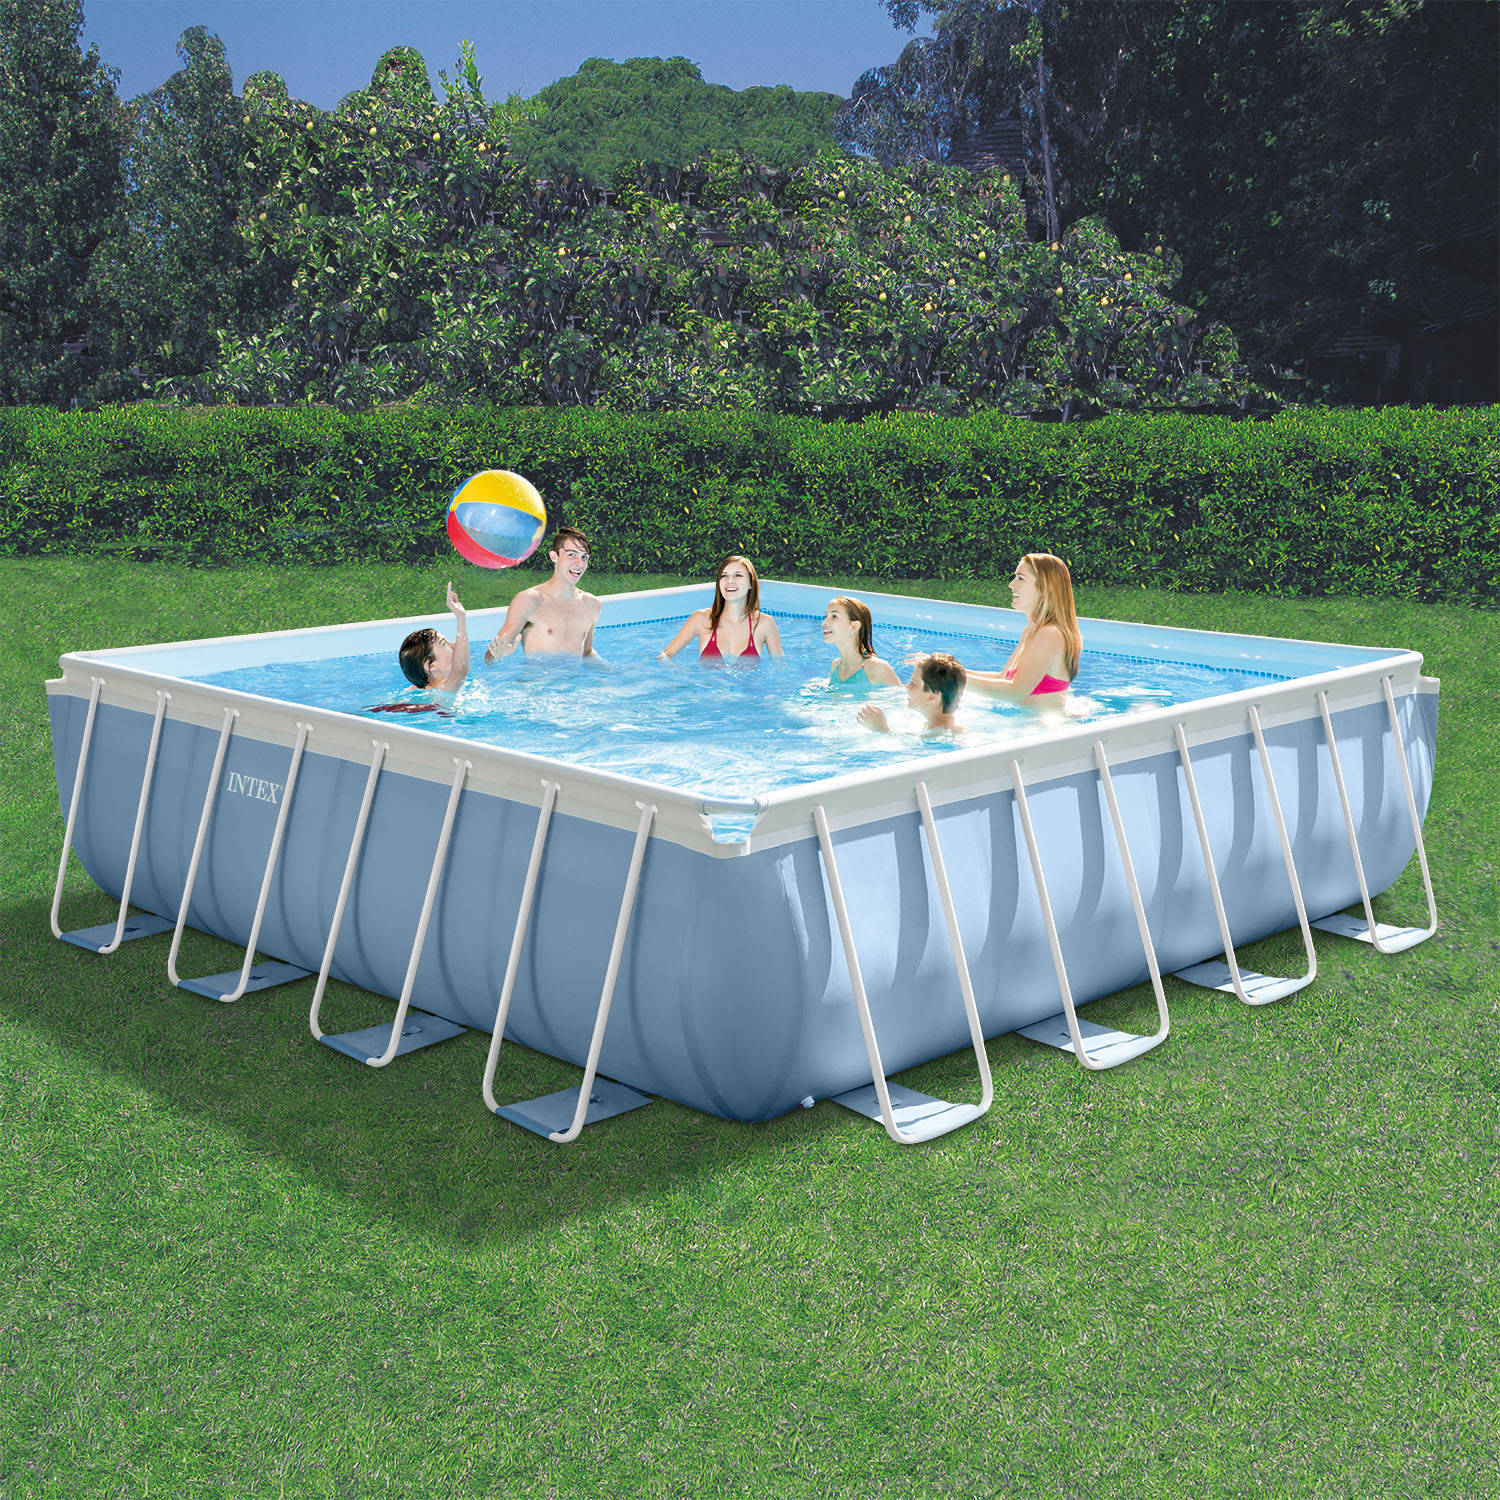 """Intex 16' x 16' x 48"""" Prism Frame MAX Above Ground Swimming Pool with Filter Pump by INTEX TRADING LTD"""